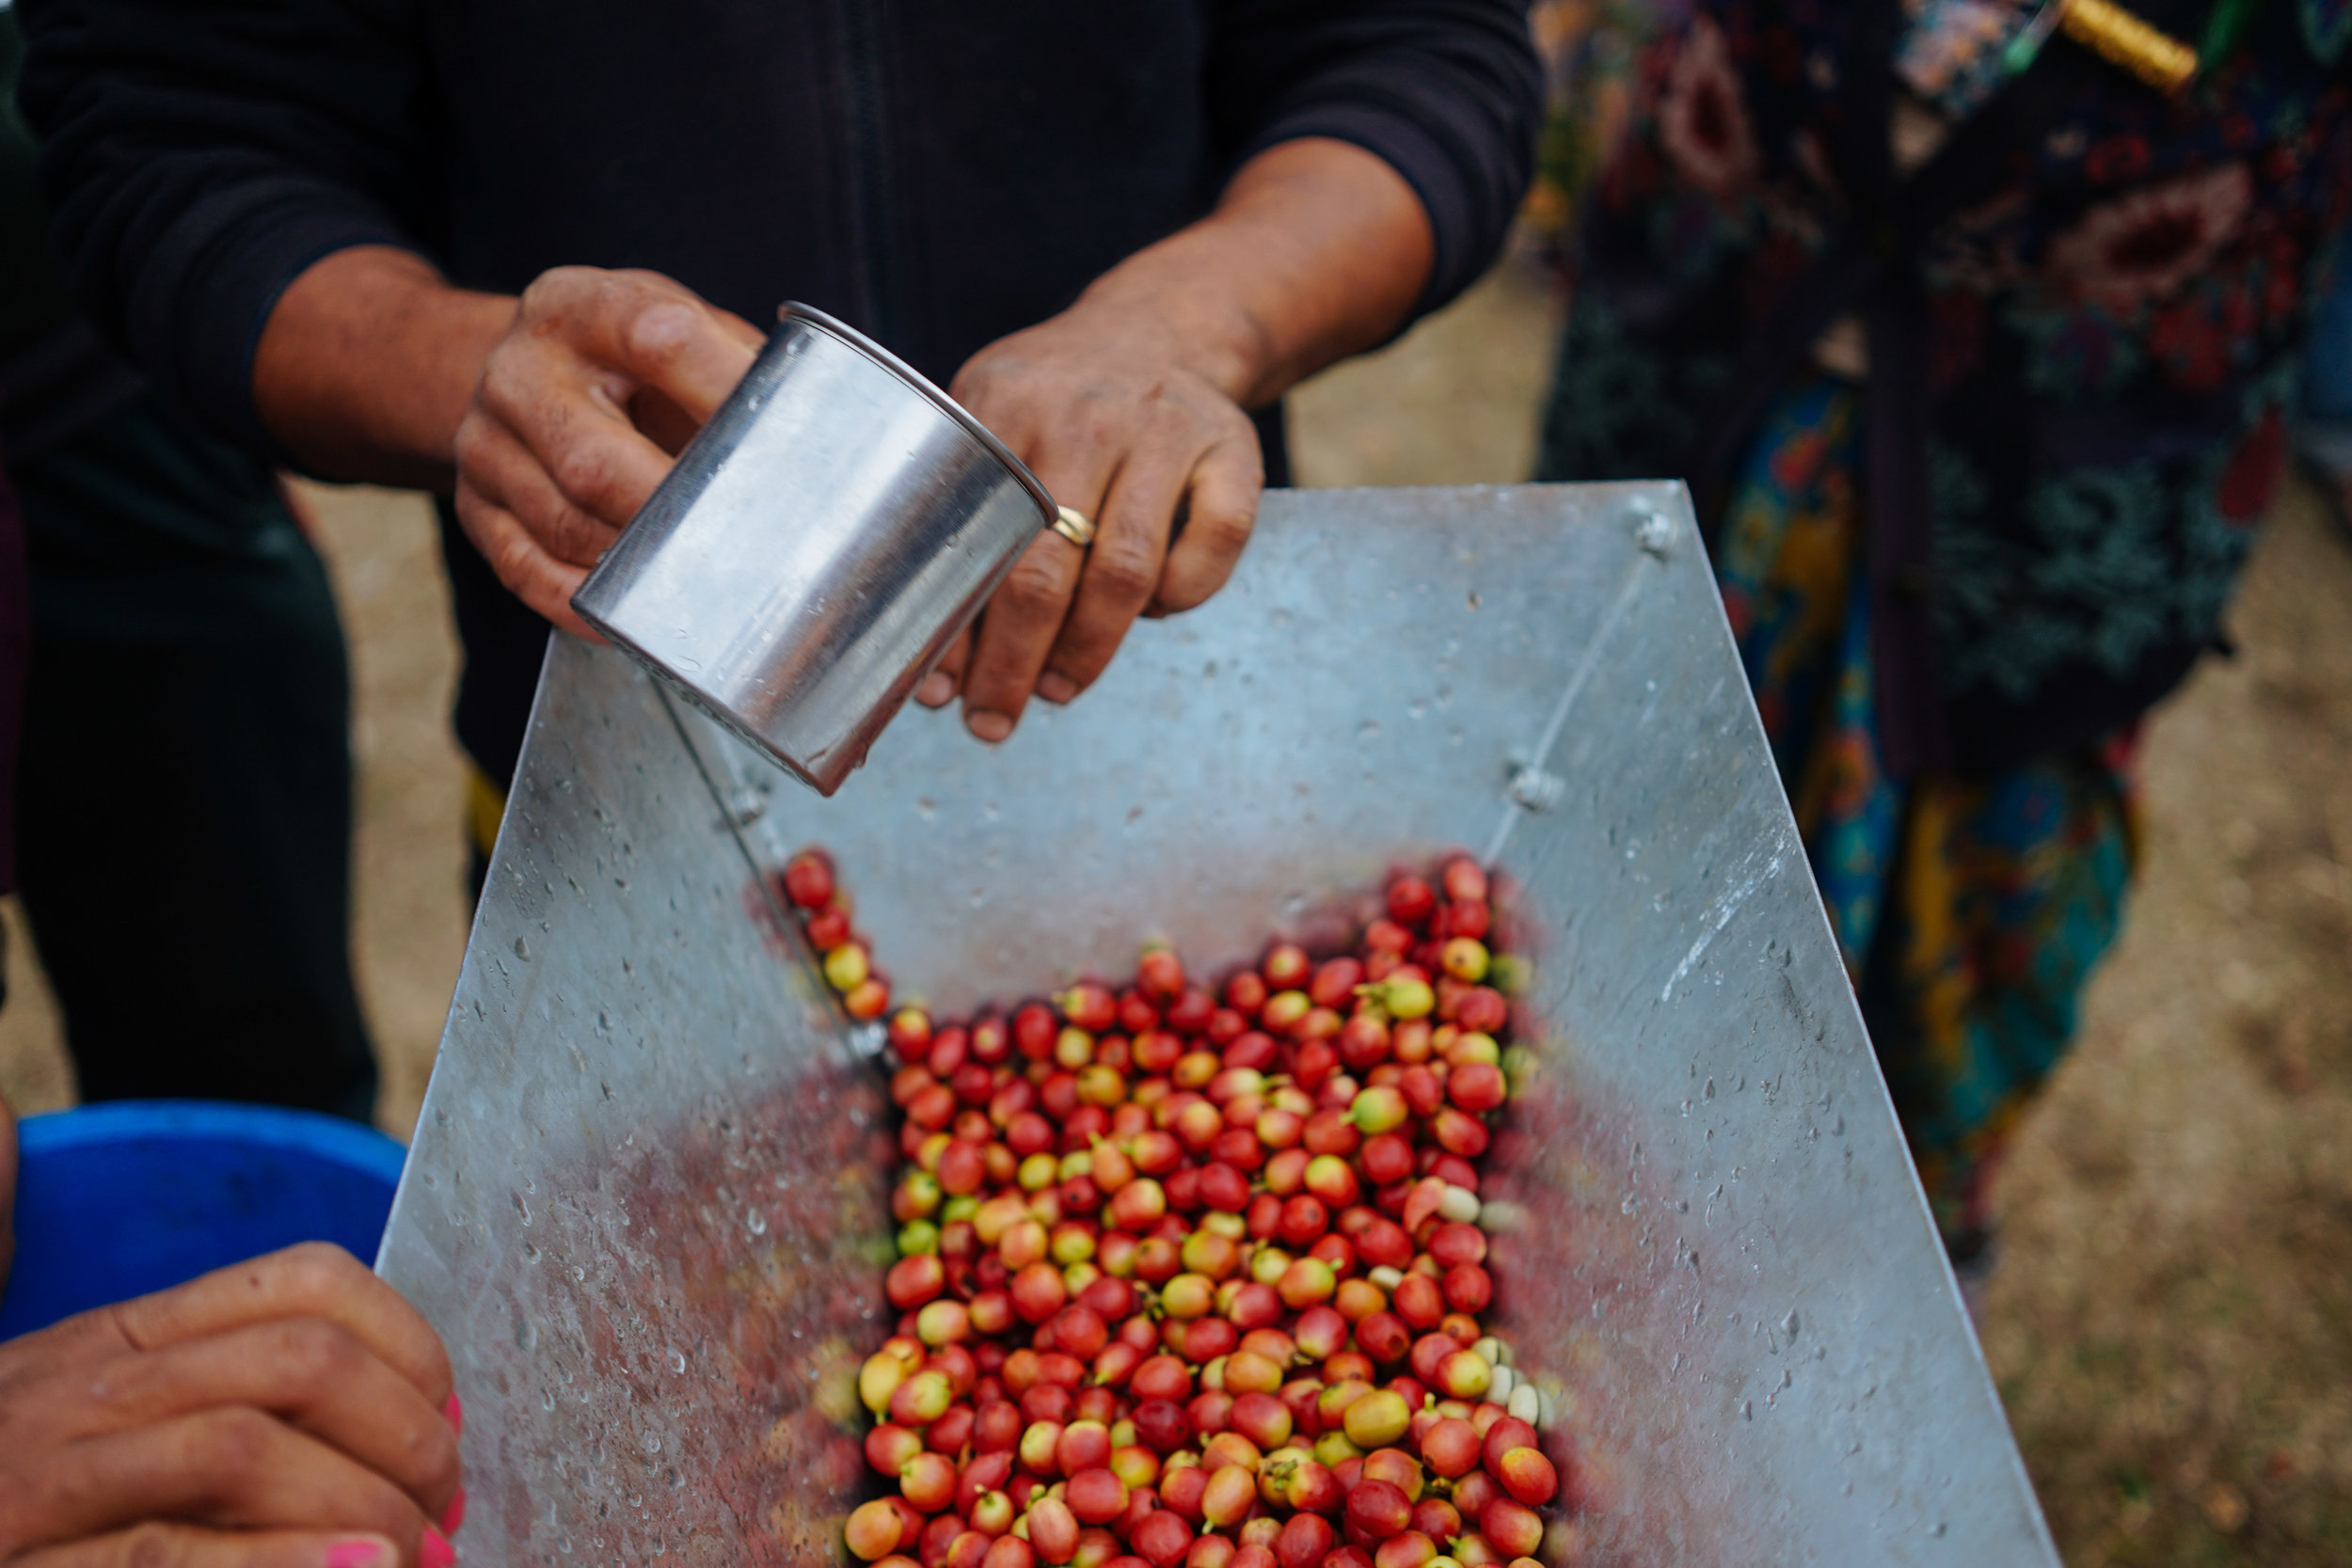 Coffee cherries are fed into a hand-turned pulping machine which removes the fleshy red cherry from the all important bean. TGT has funded six pulping machines for Solukhumbu so far. The addition of this basic technology has been transformative as it means farmers no longer have to pulp their coffee by hand.